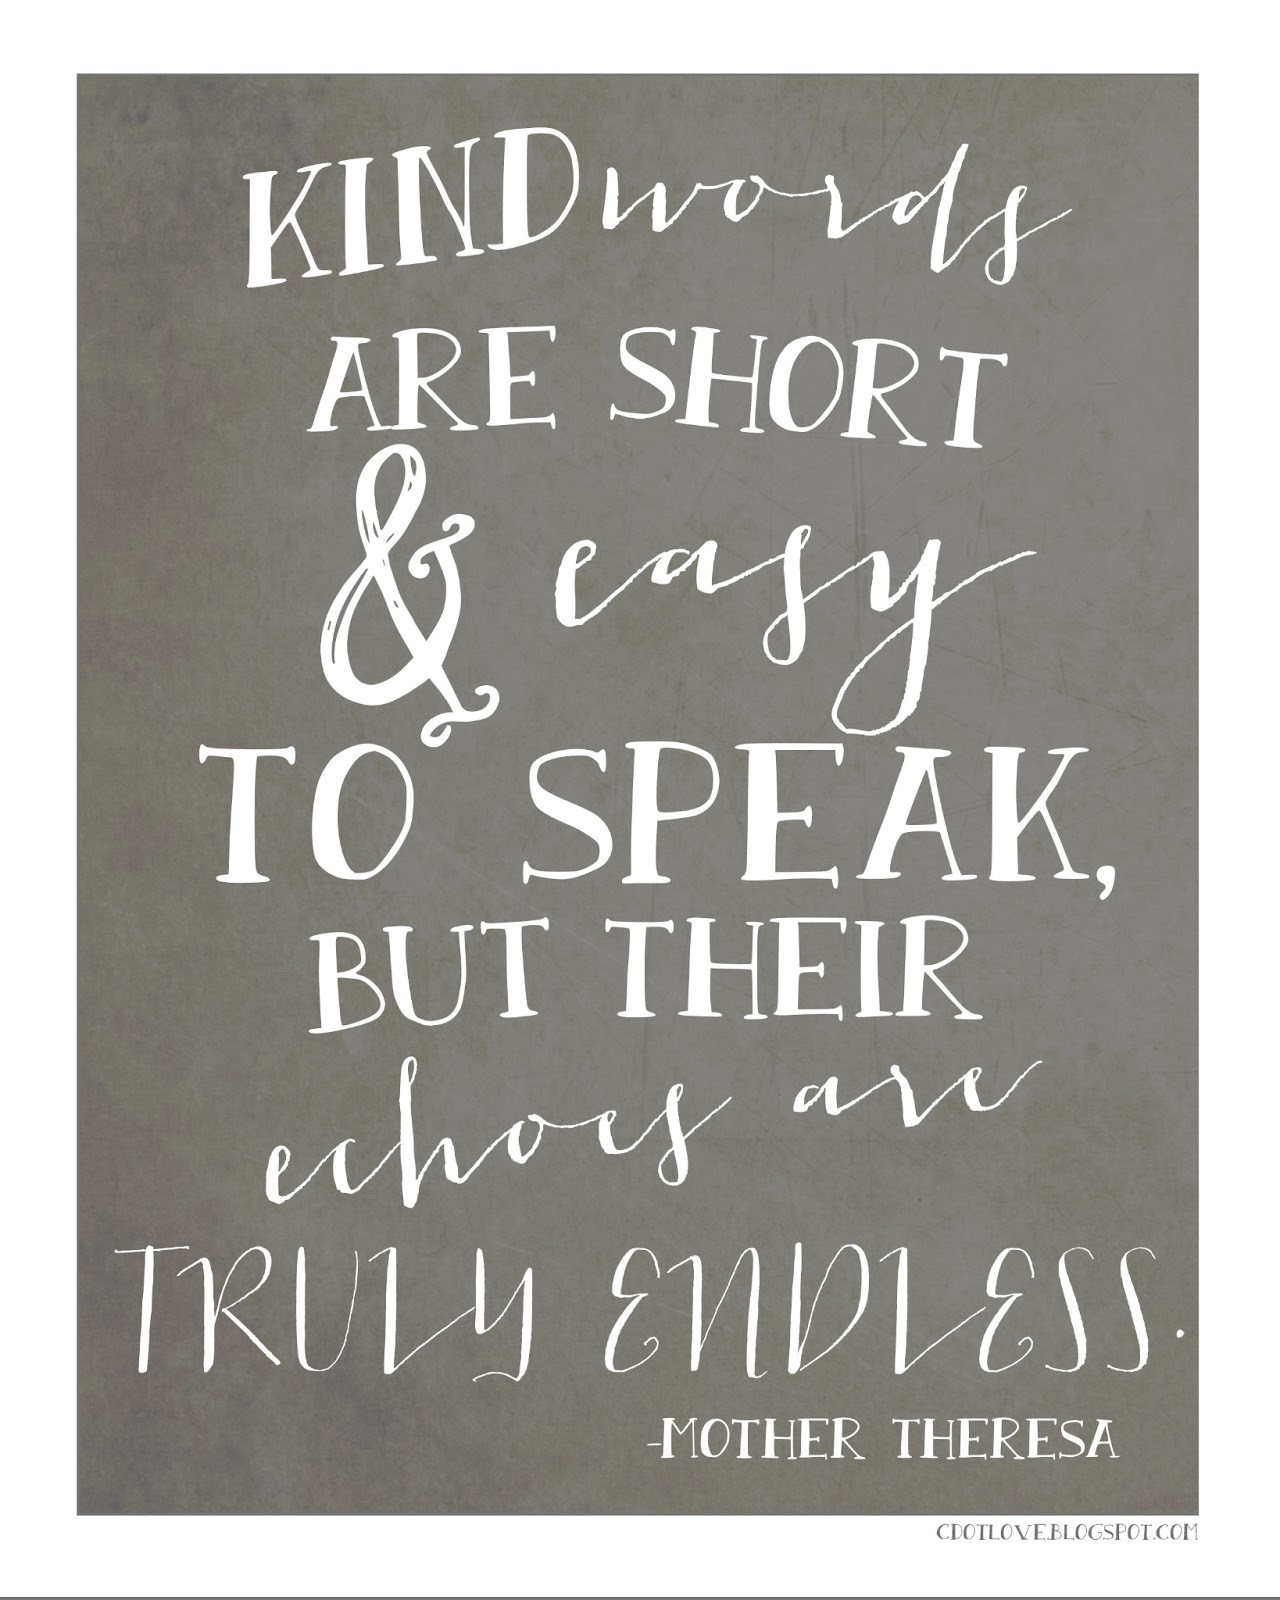 Quotes Kindness  CdotLove Design by Kristin Clove  Kindness with free